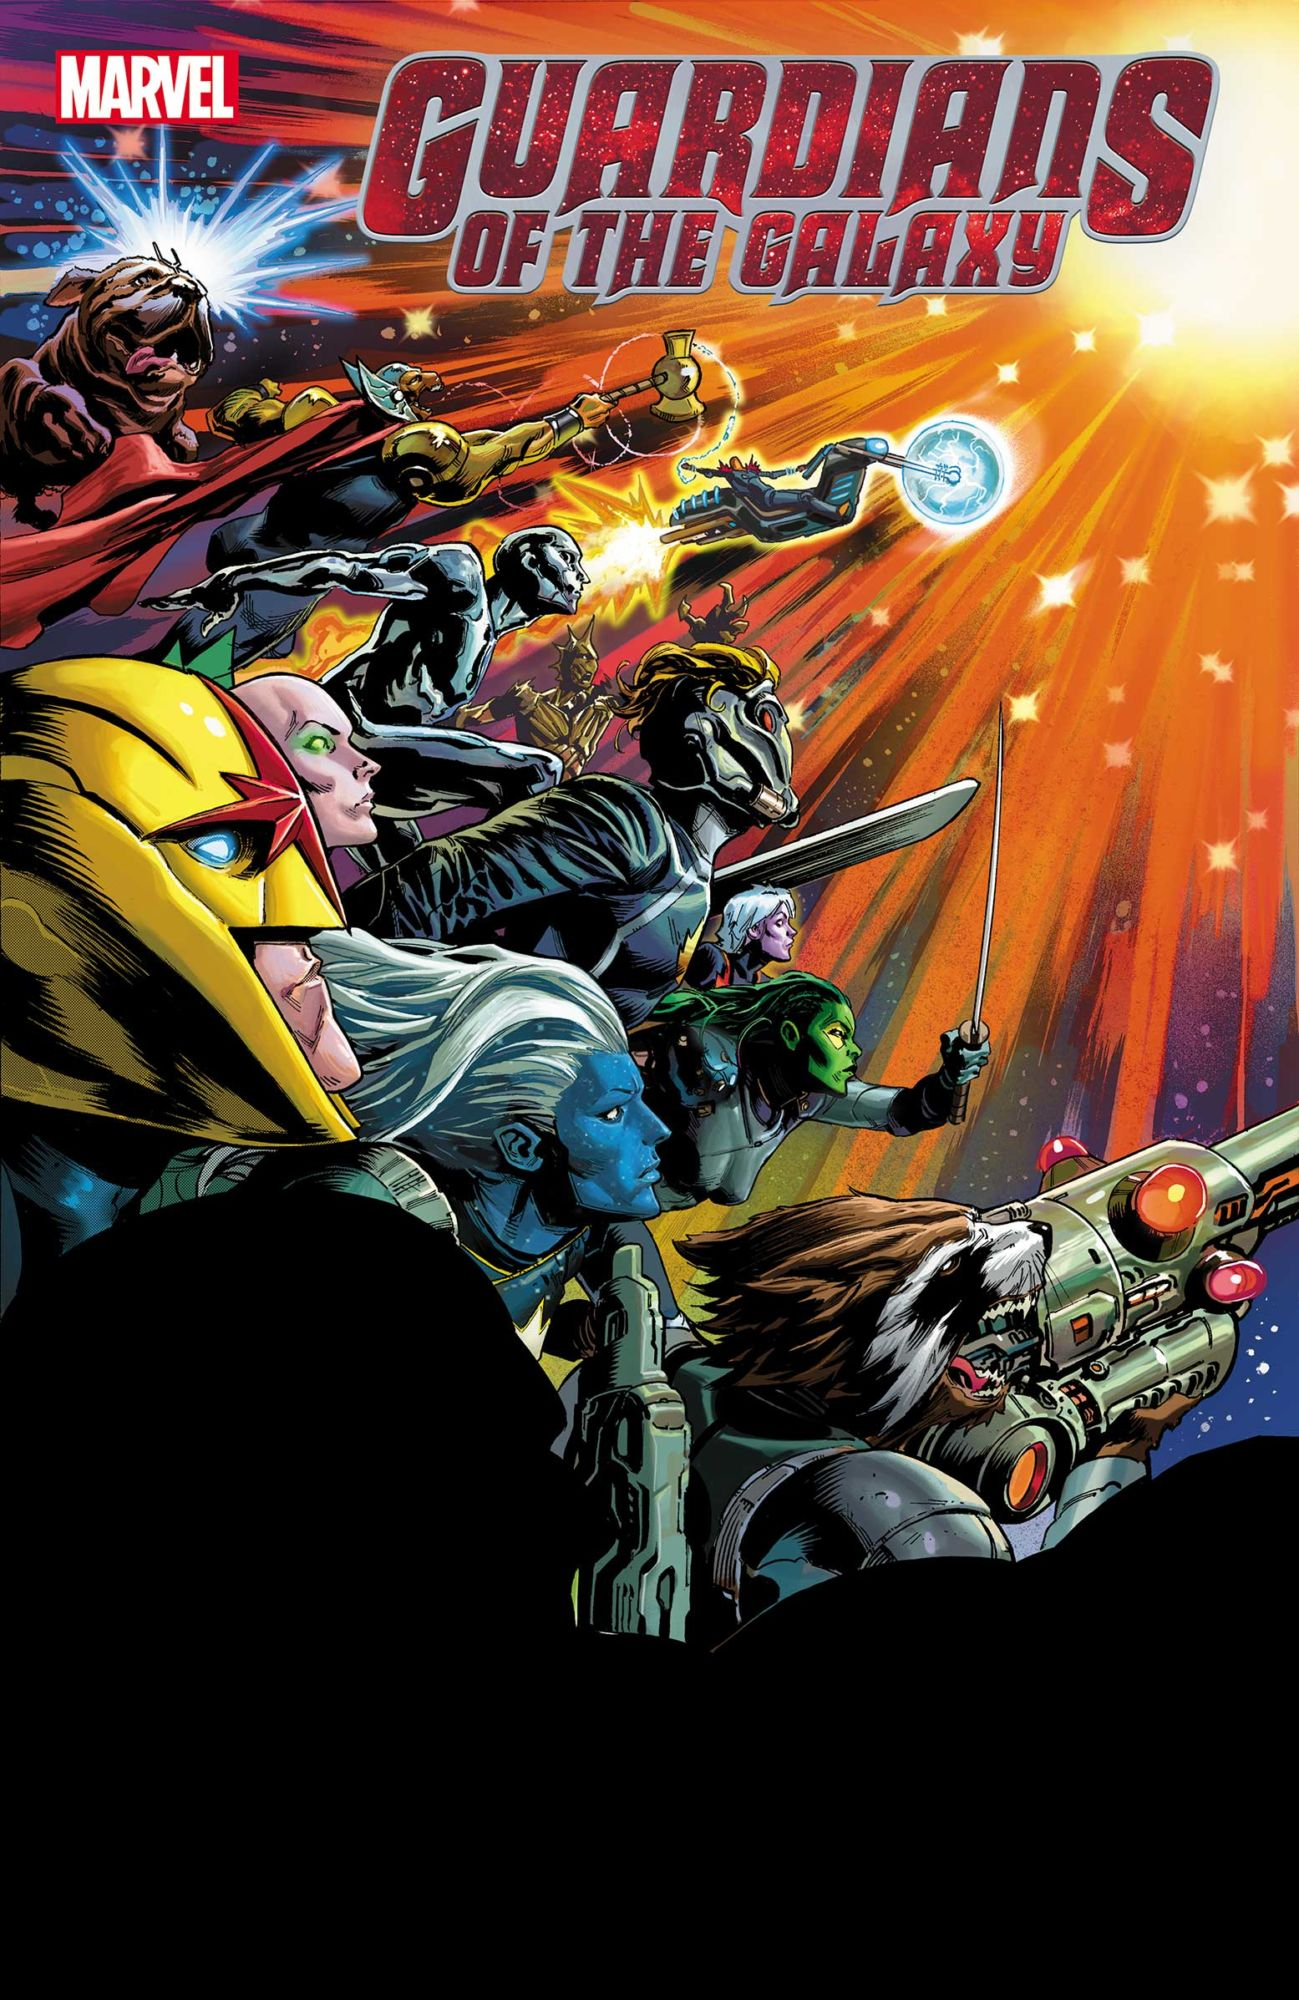 Donny Cates Brings Cosmic Storylines to A Grand Finale in Guardians Of The Galaxy #12???